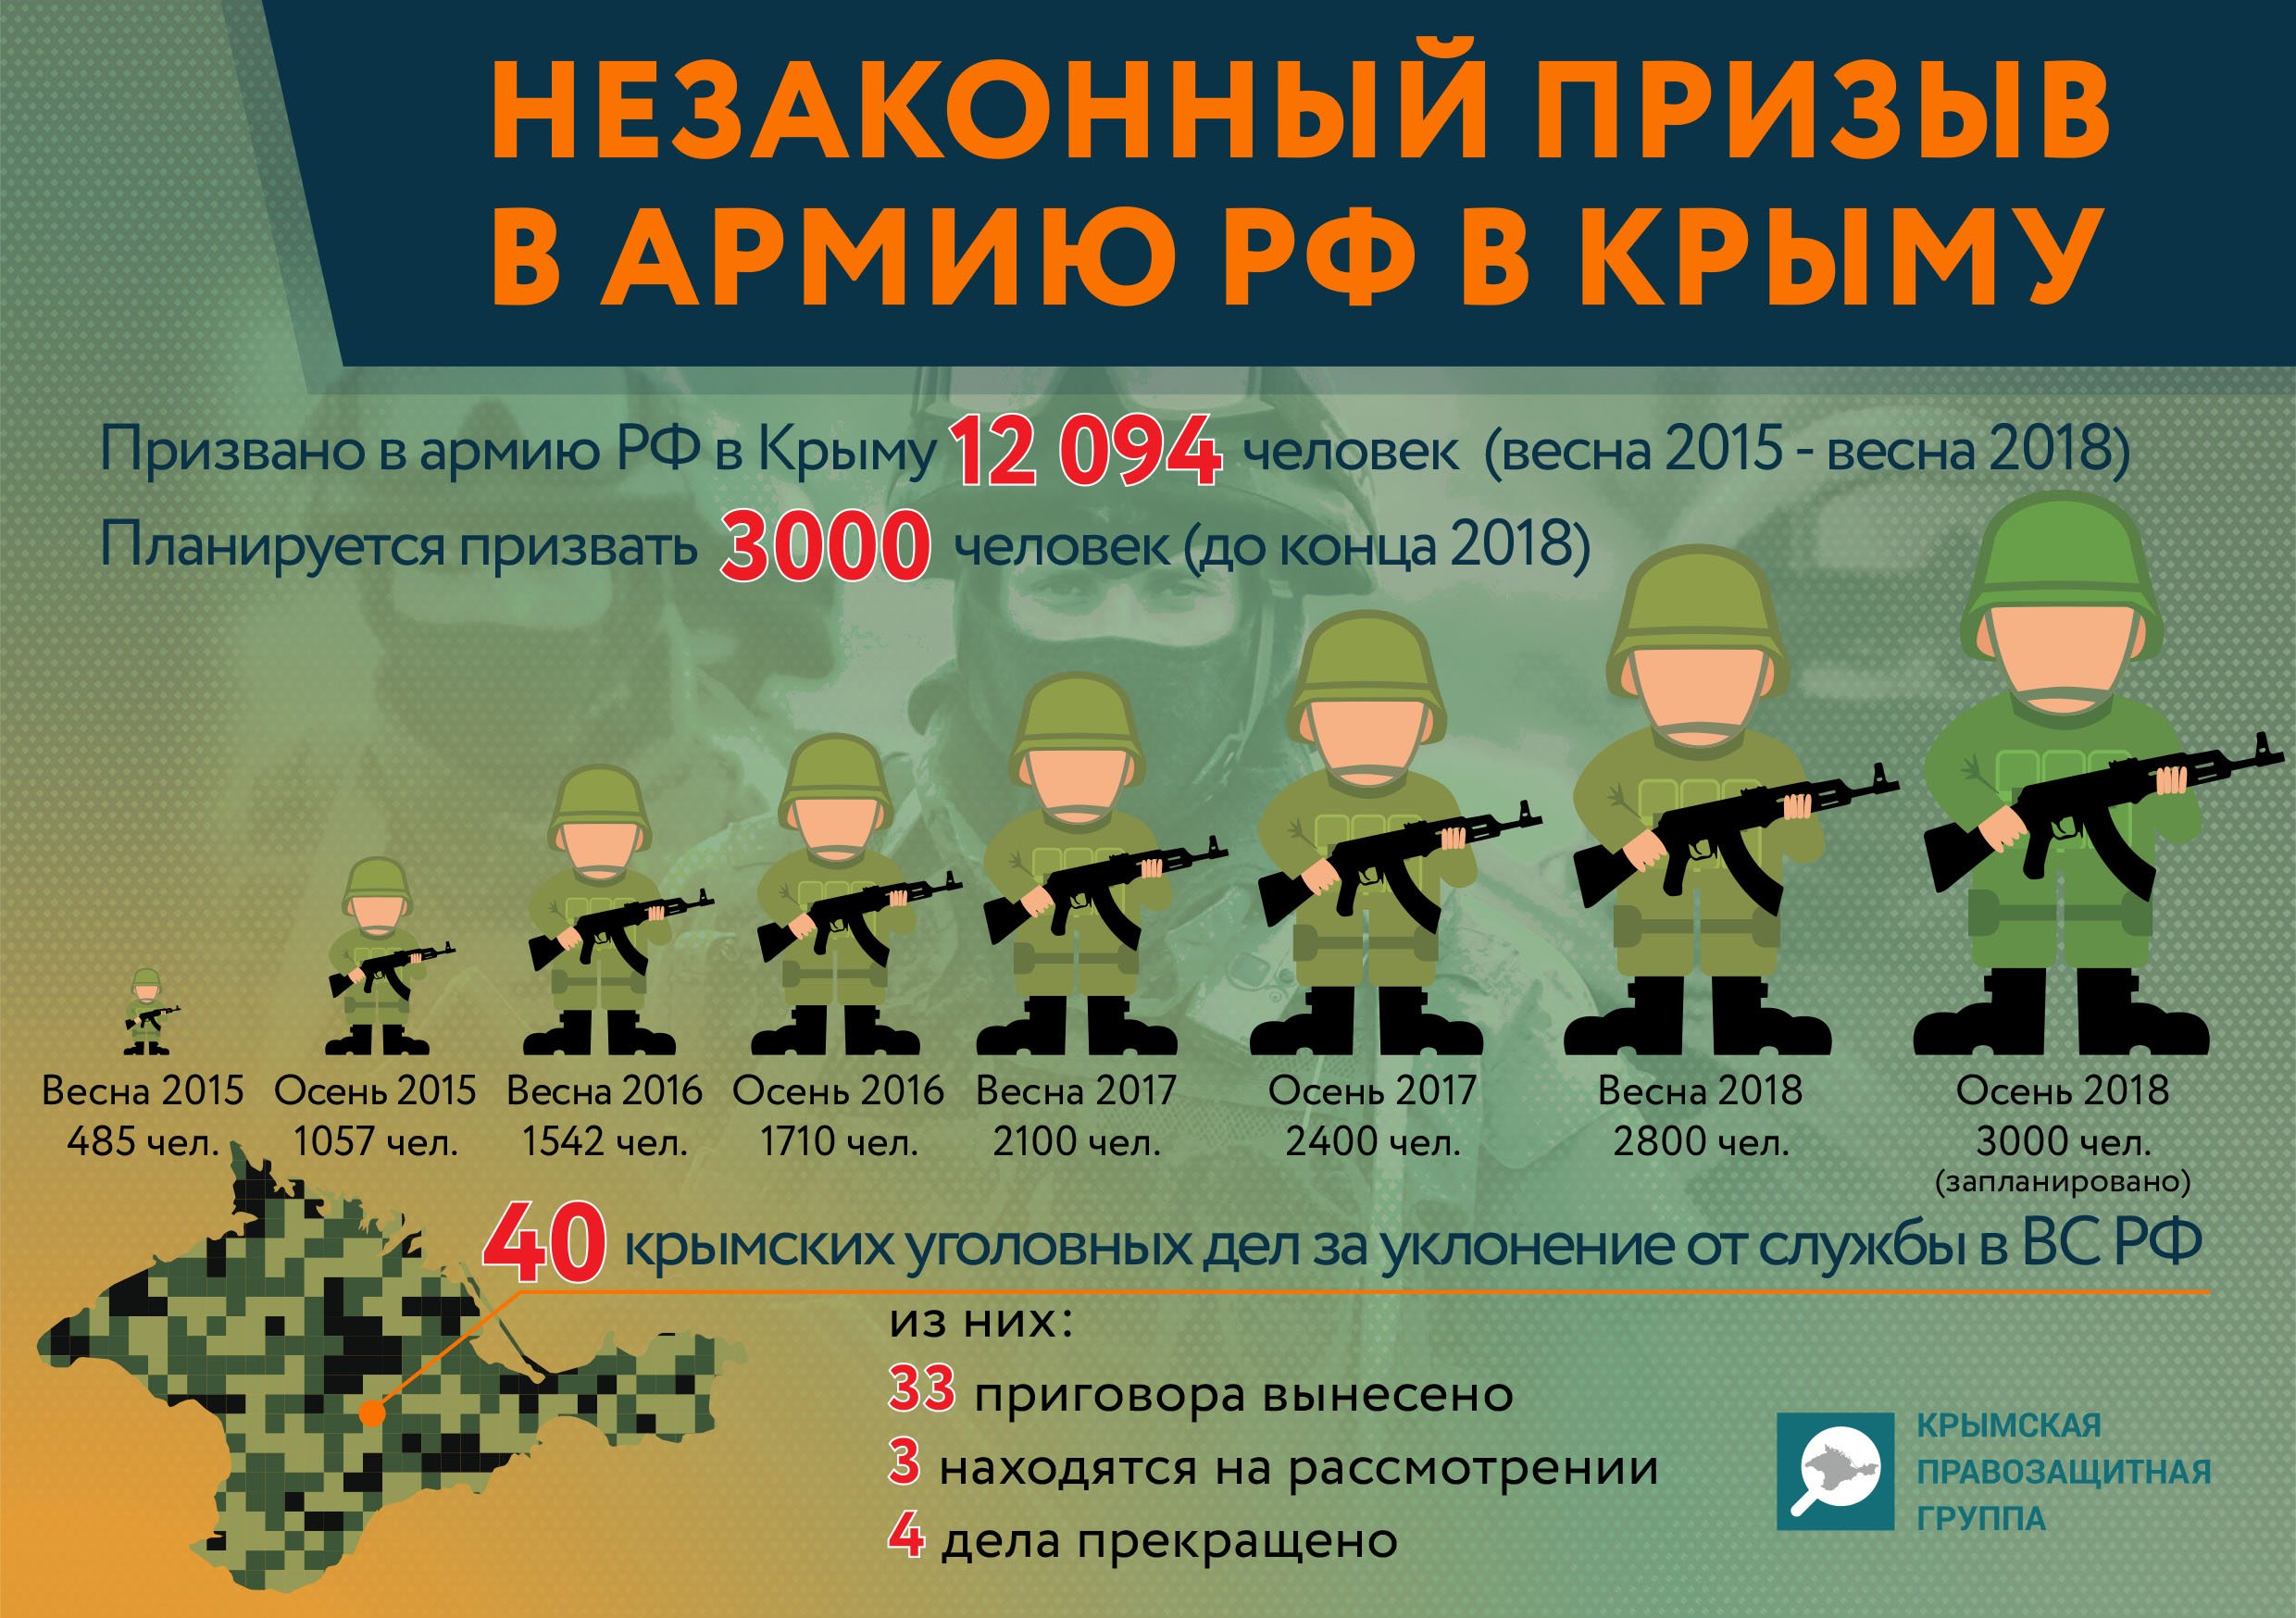 What evidence of unlawful conscription to the RF Armed Forces in Crimea has been presented to the International Criminal Court? (infographic)